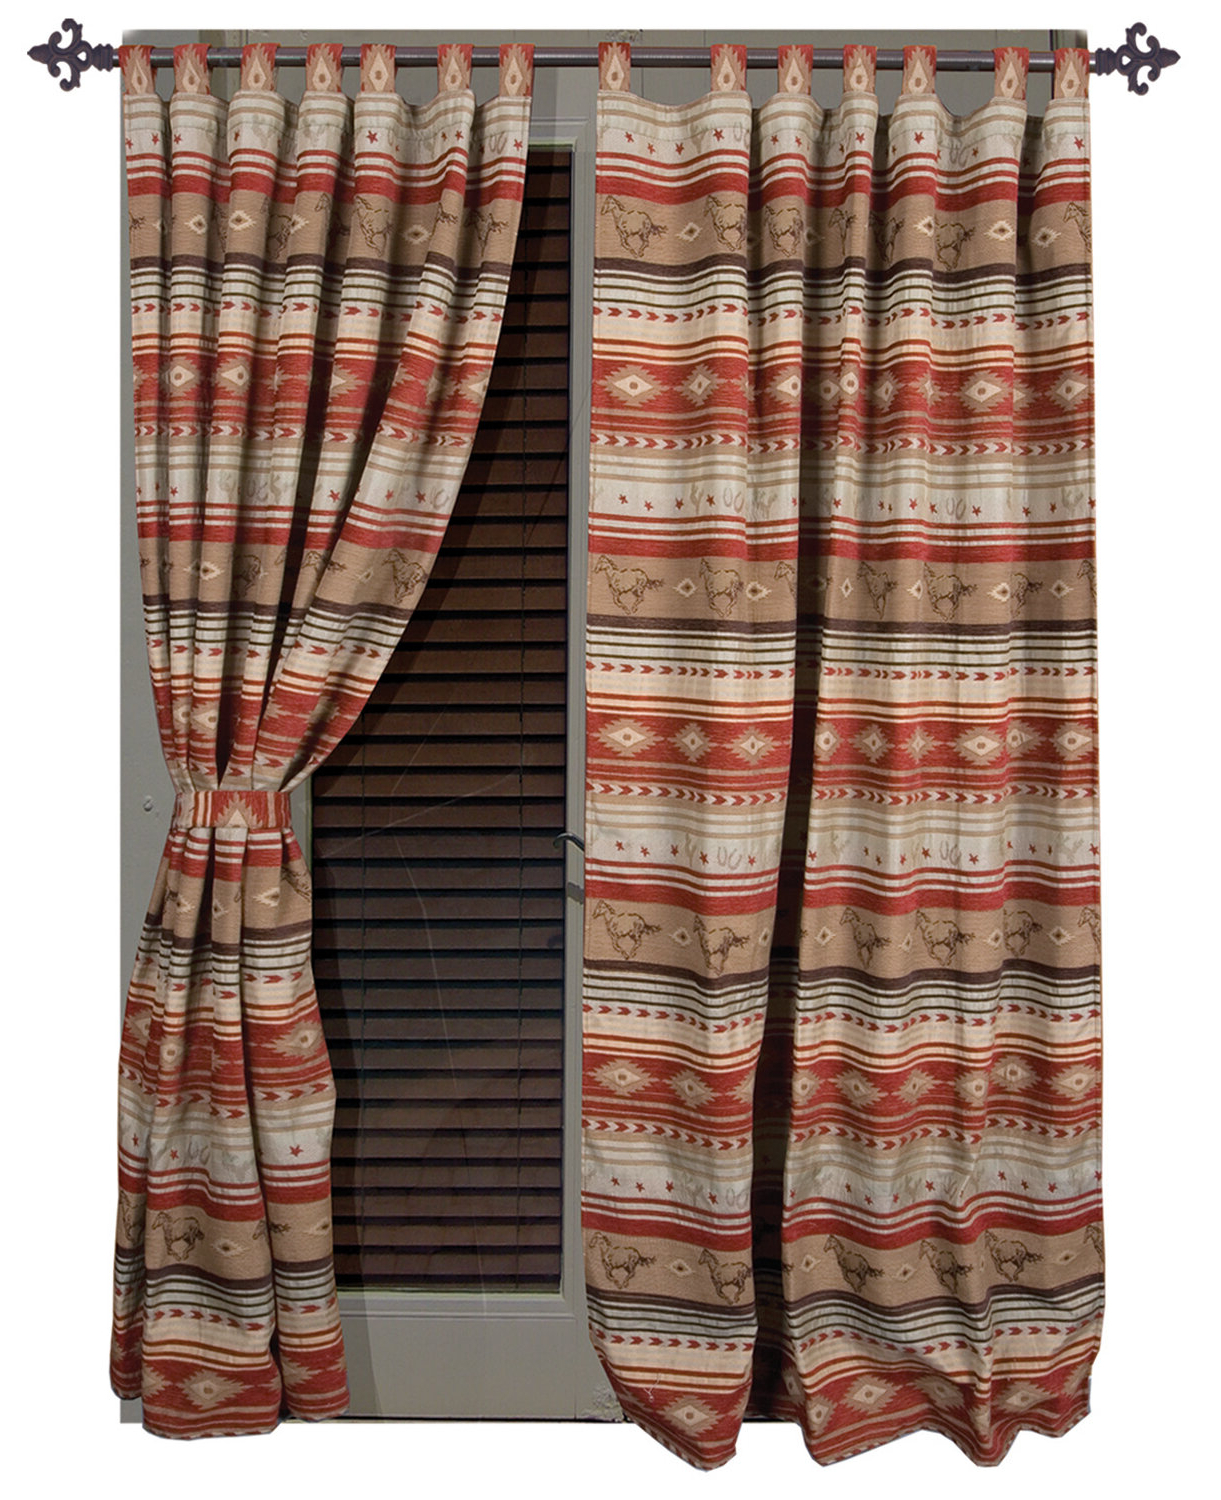 Complete Cottage Curtain Sets With An Antique And Aubergine Grapvine Print Within Most Recently Released Suhel Striped Tab Top Curtain Panels (View 3 of 20)